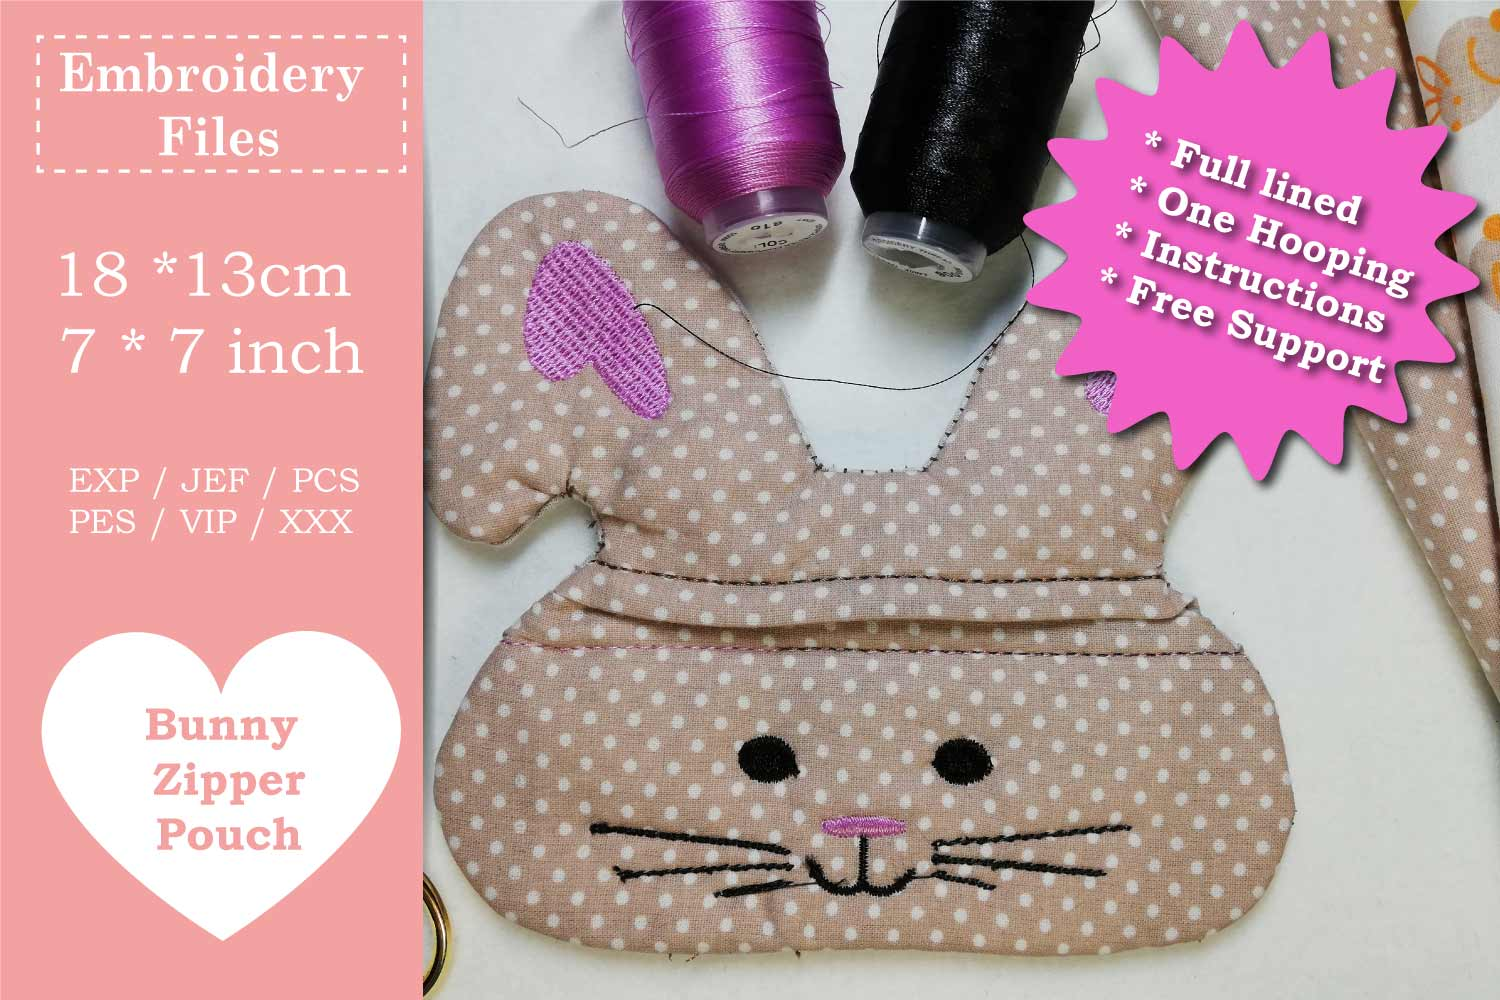 Zippered Easter Bunny Pouch - ITH Embroidery File example image 2